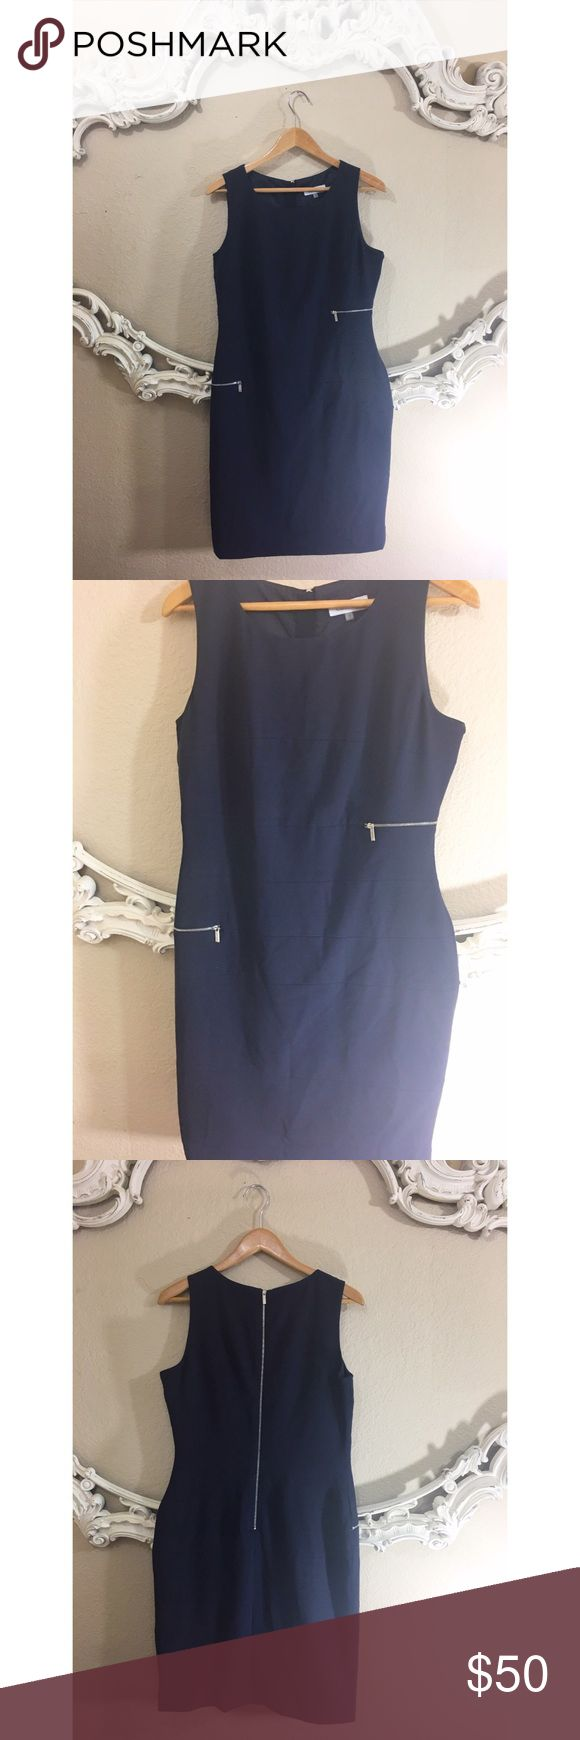 Calvin Klein Navy career sheath zipper dress Excellent condition. Navy blue sleeveless dress with silver zippers in front and zip down back. No trades. Calvin Klein Dresses